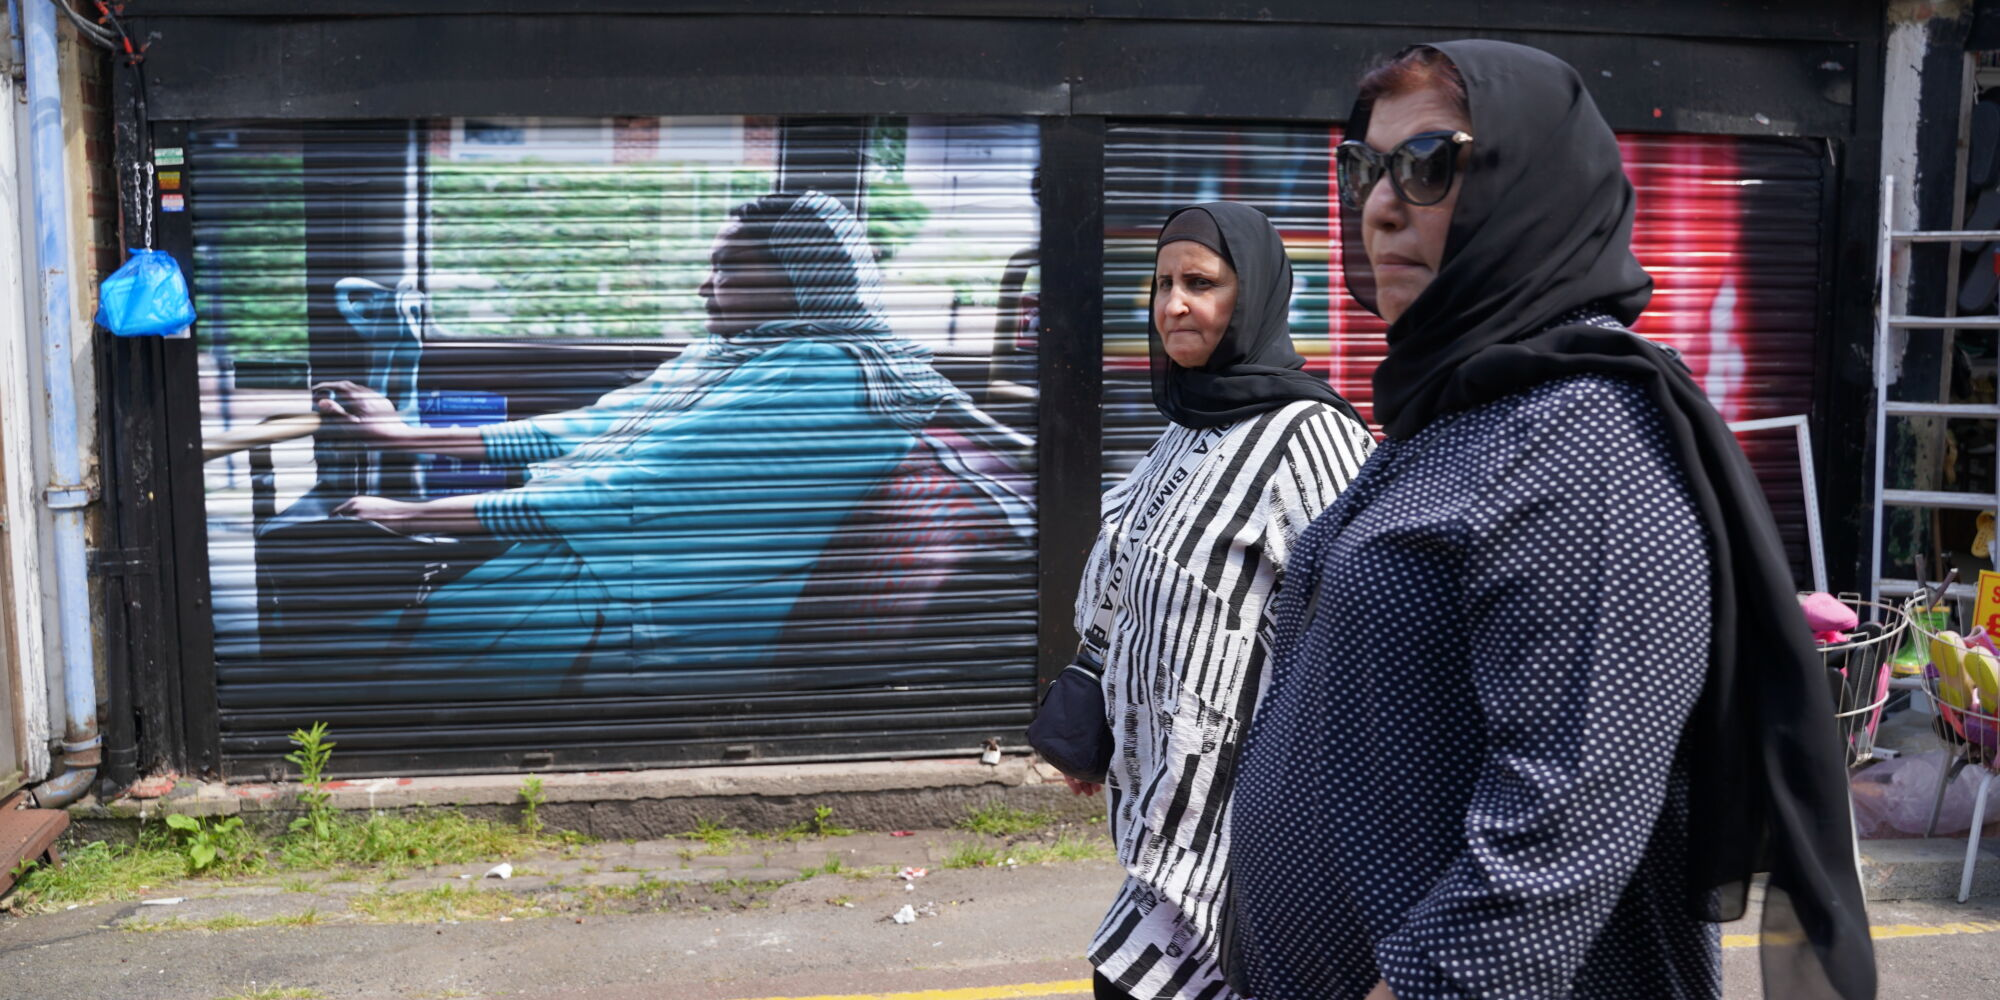 Two women walking past a large-scale portrait of a woman riding on a bus pasted on a market stall shutter in Shepherd's Bush Market